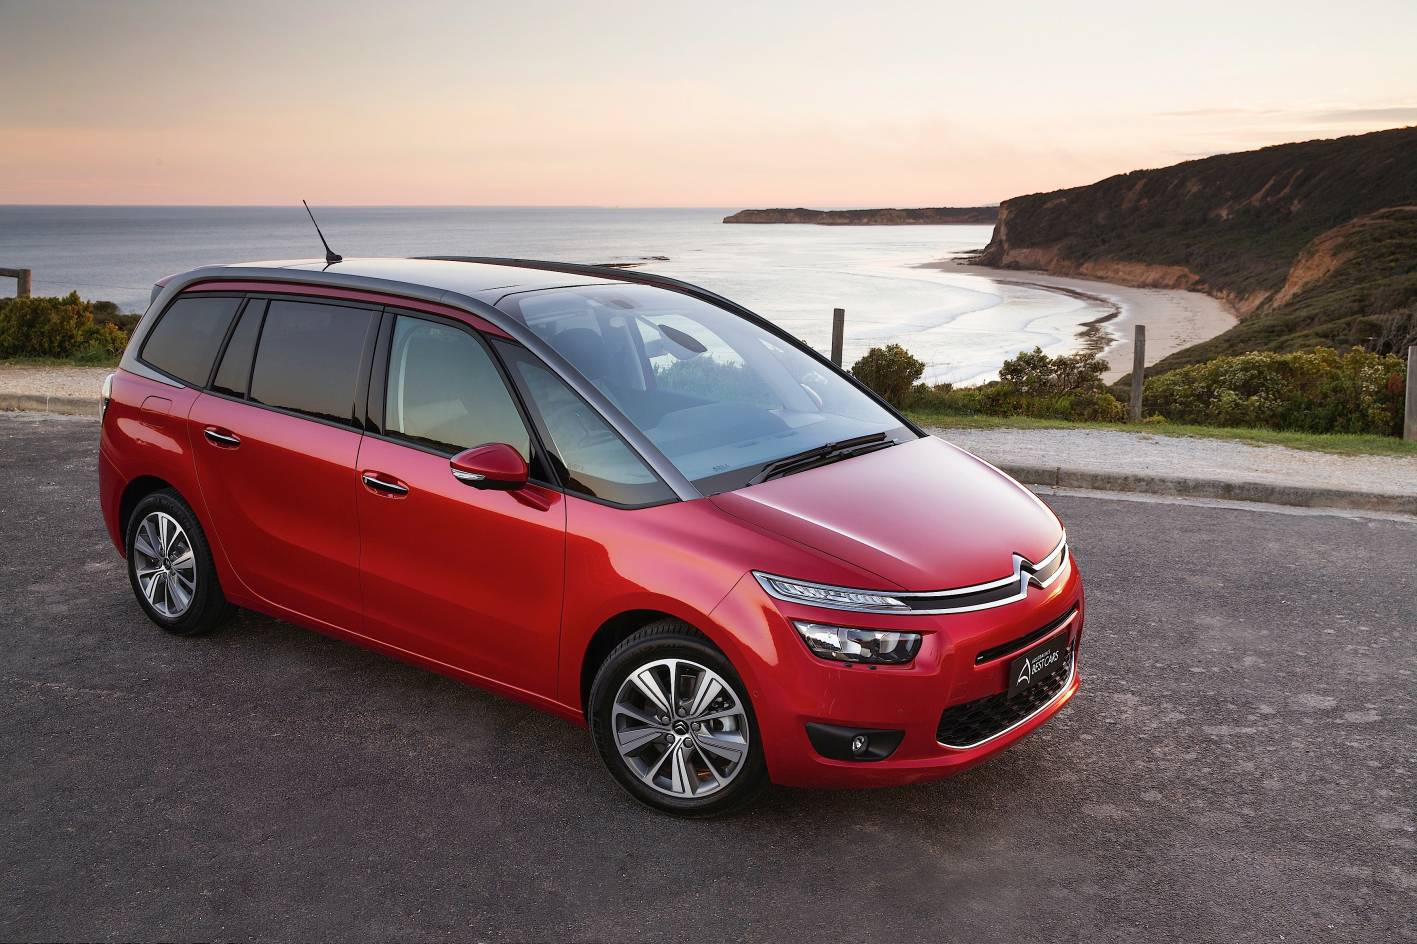 news citroen grand c4 picasso gains extra safety and technology. Black Bedroom Furniture Sets. Home Design Ideas